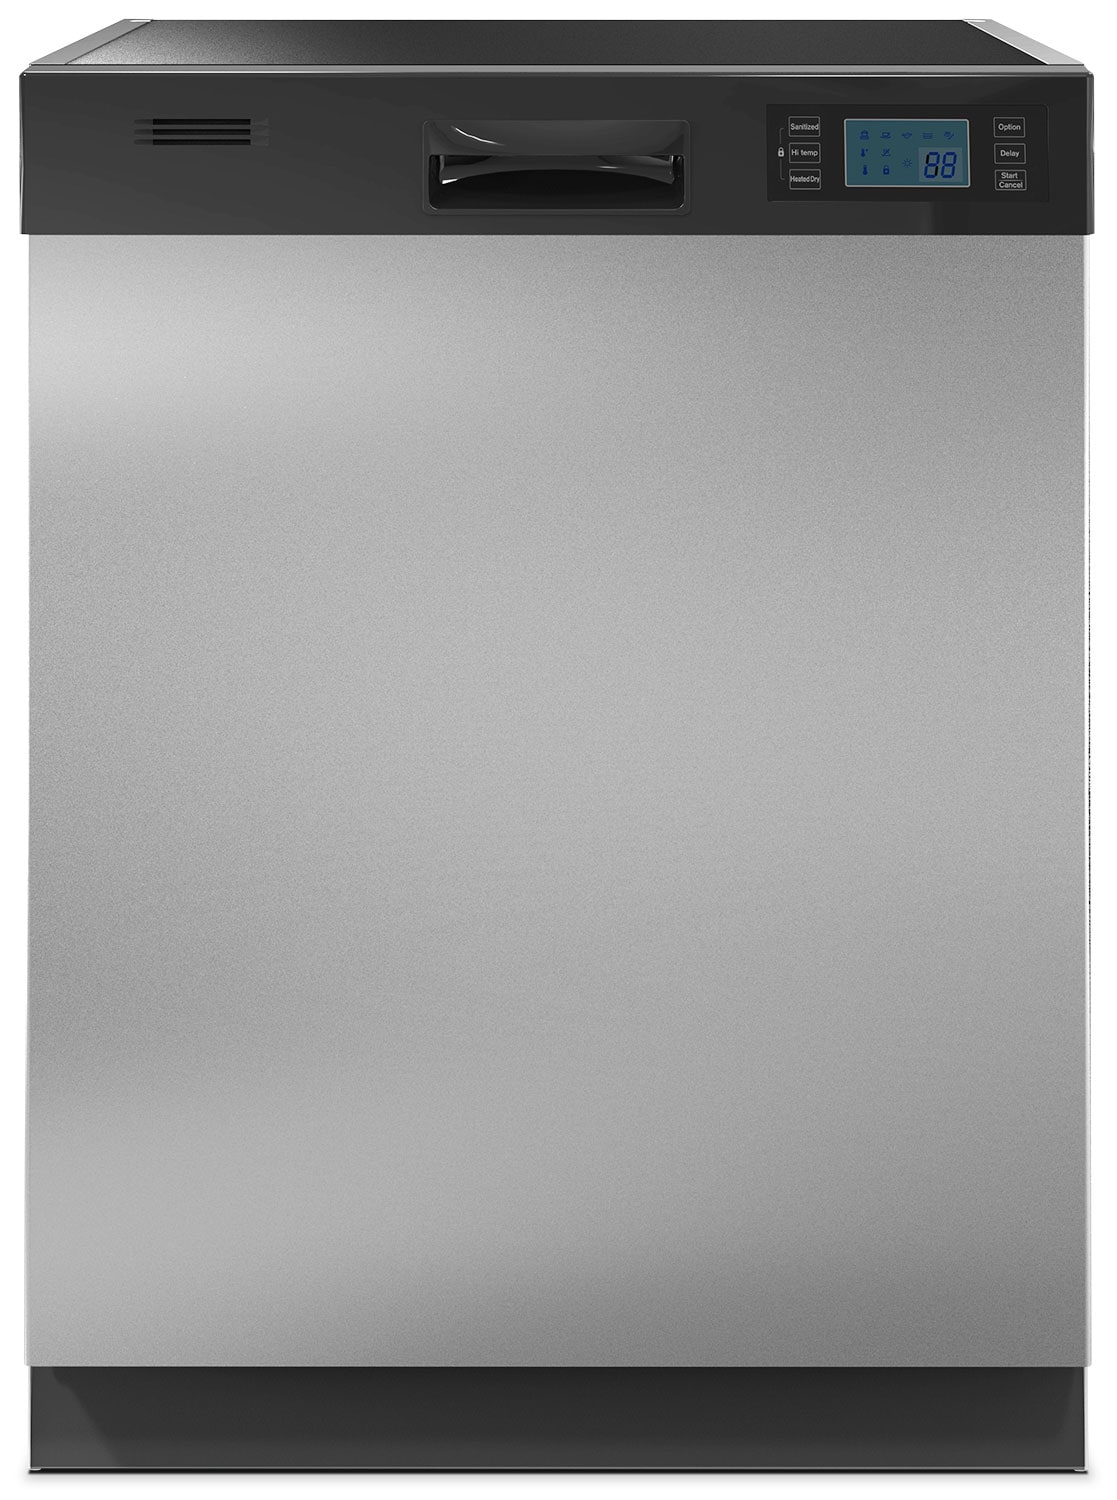 Midea Built In Dishwasher Wqp12 9373h 1 Us The Brick